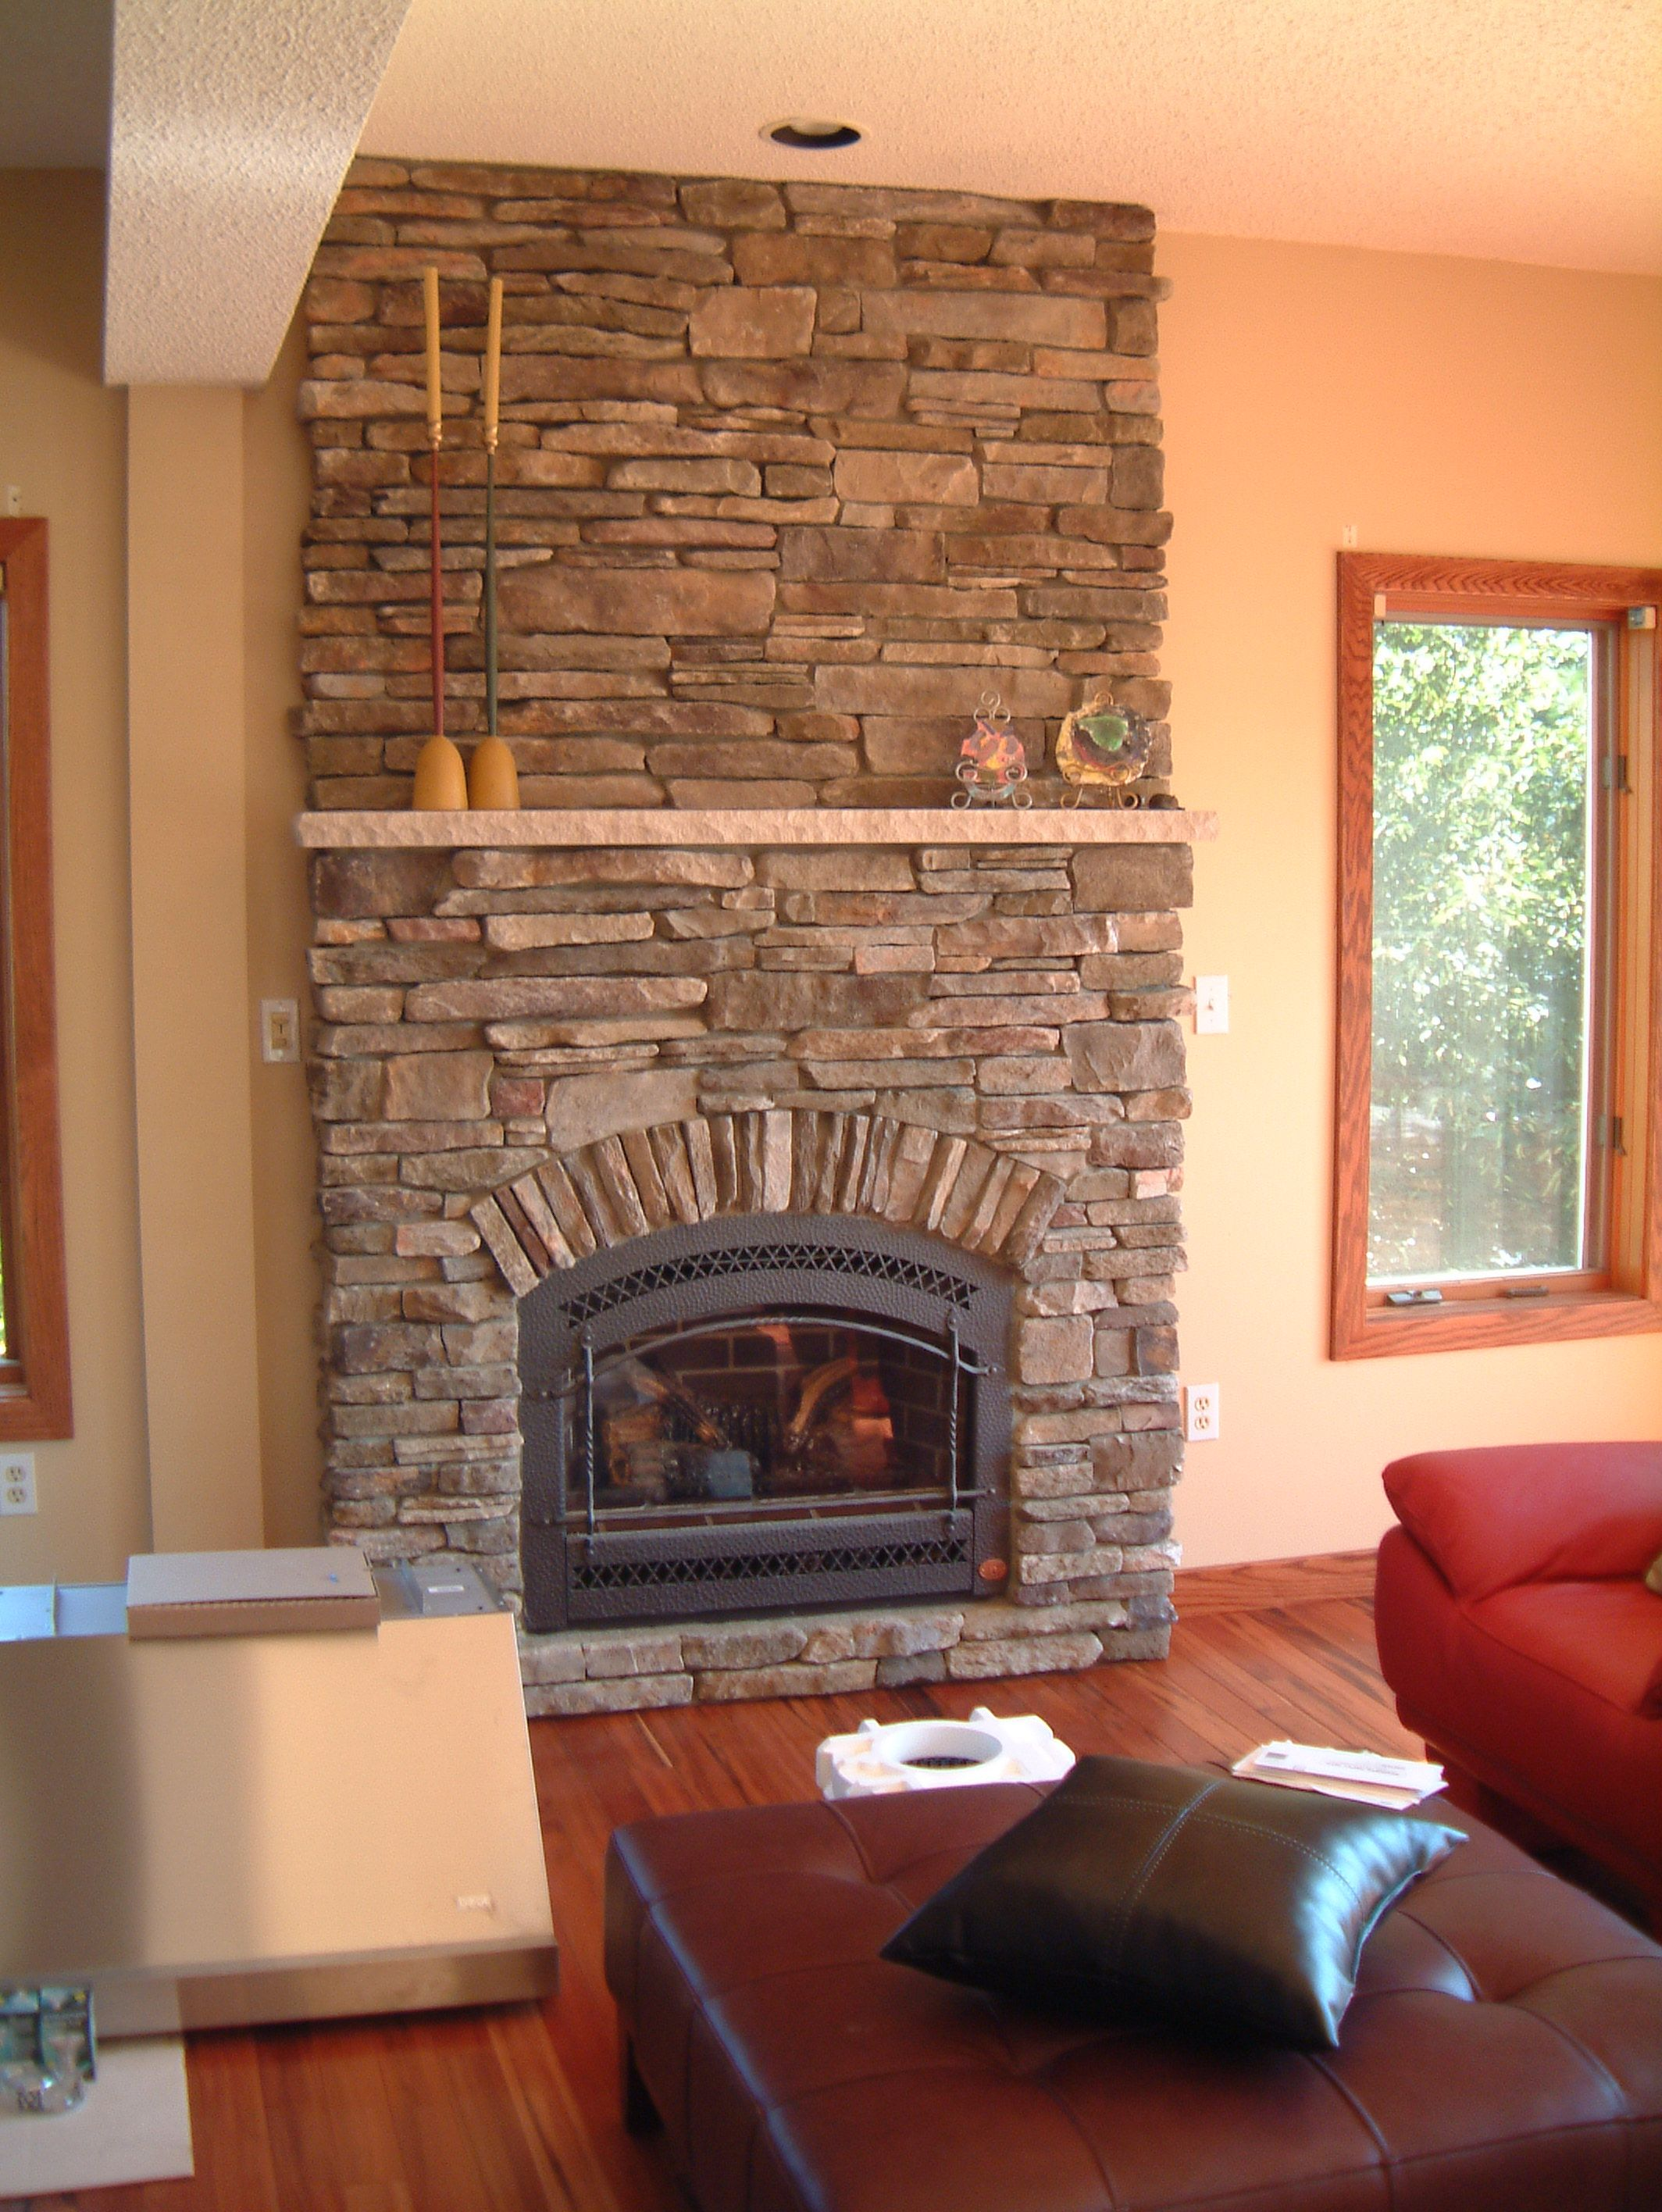 Inserts fireplace accessories new york by bowden s fireside - Bucks County Southern Ledgestone By Boral Cultured Stone With Limestone Mantel 564 Fpx Dv Gas Fireplace Doorsfireplace Redofireplace Insertsfireplace